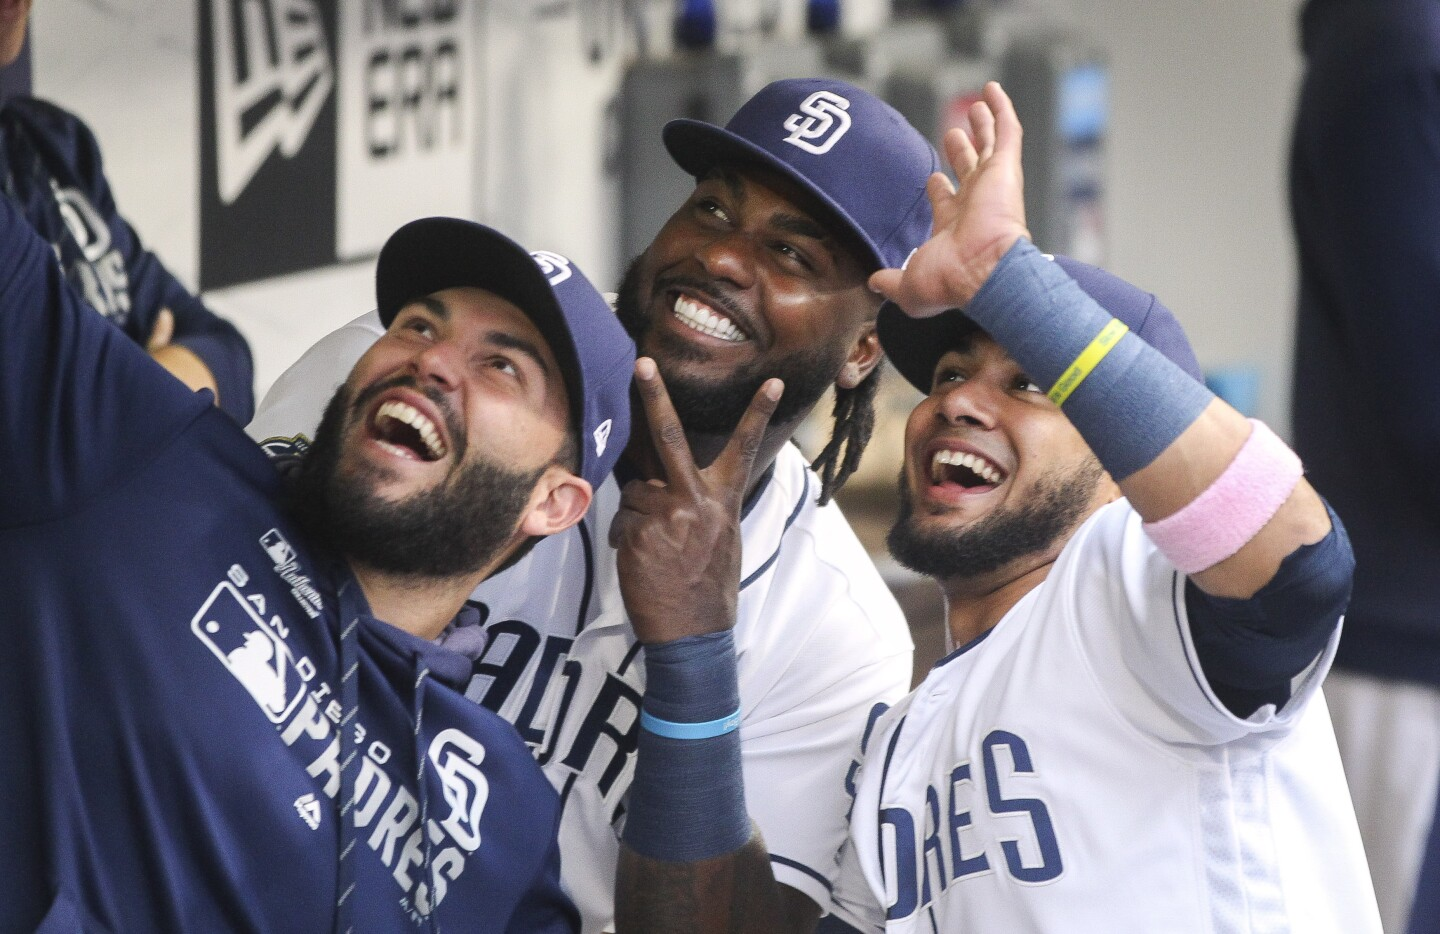 The Padres' Eric Hosmer, left, Franmil Reyes, center, and Fernando Tatis Jr. strike a pose while in the Padres dugout before the start of the Padres' game against the Nationals at Petco Park on Thursday, June 6, 2019 in San Diego, California.